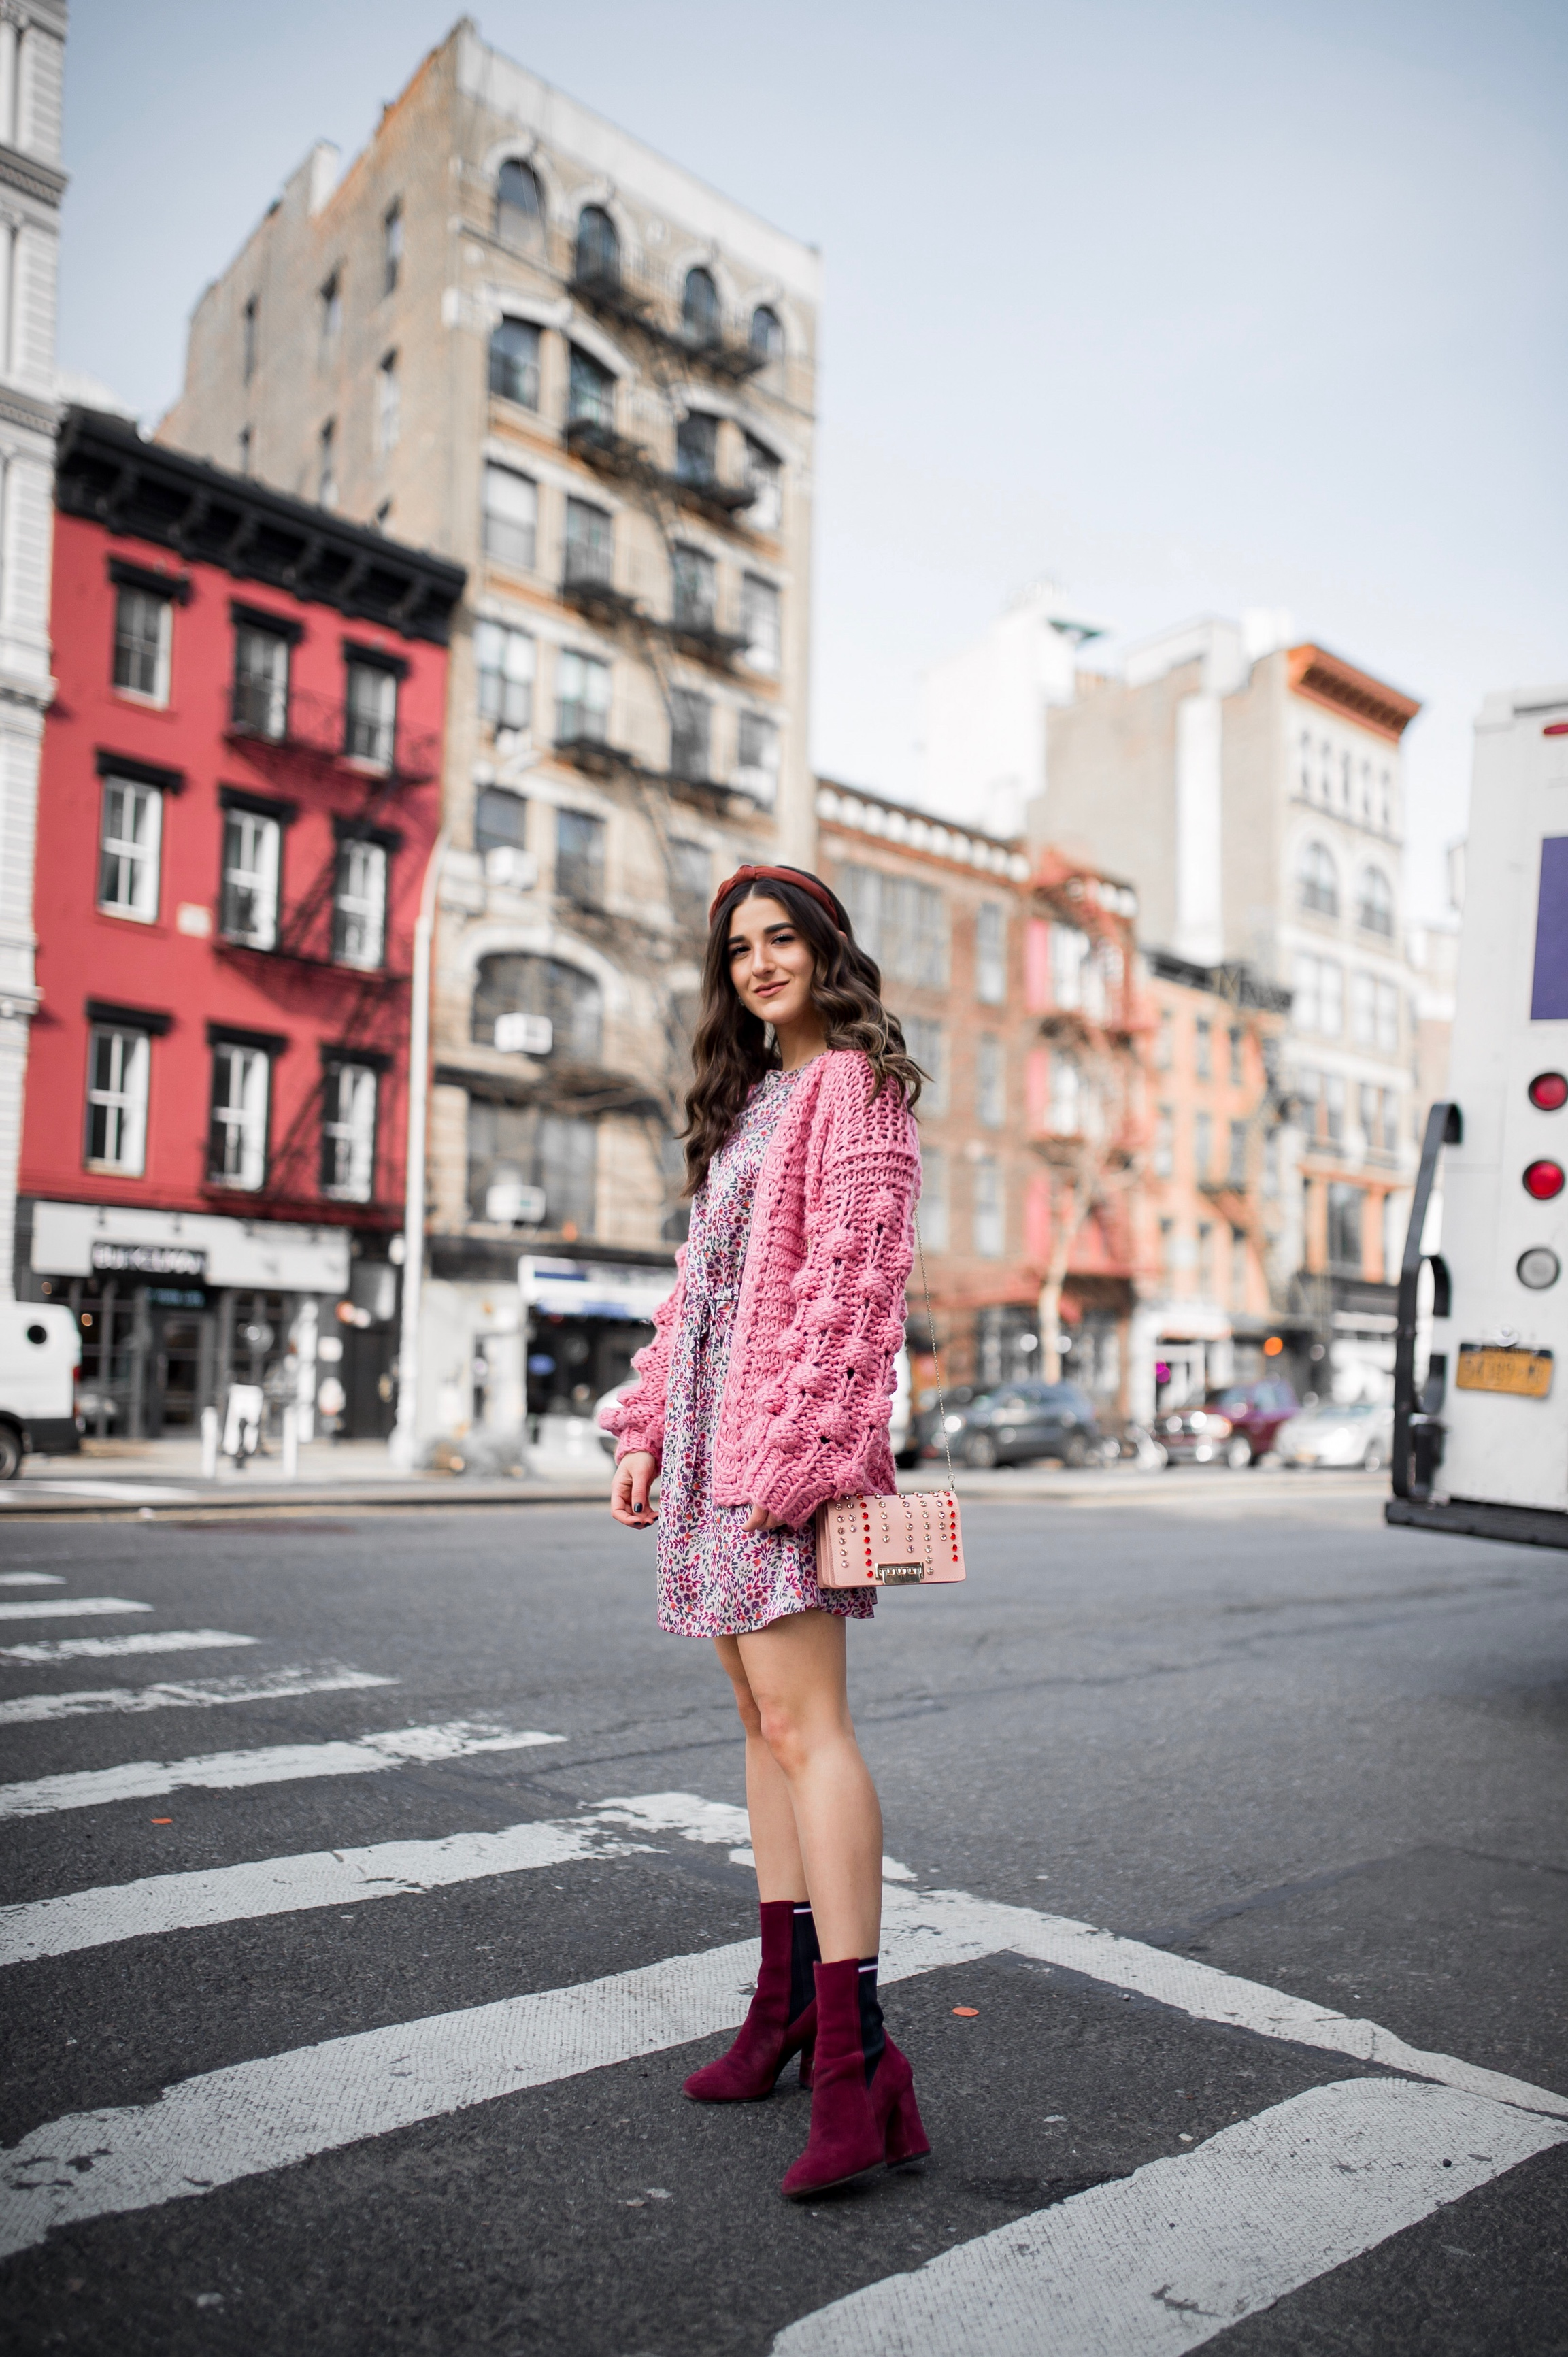 How Being In A Miserable Job Shaped My Entire Career Silk Floral Dress + Pink Pom Pom Sweater Esther Santer Fashion Blog NYC Street Style Blogger Outfit OOTD Trendy Shopping Mango Sale Winter How To Wear Maroon Velvet Booties Zac Posen Swarovski Bag.jpg